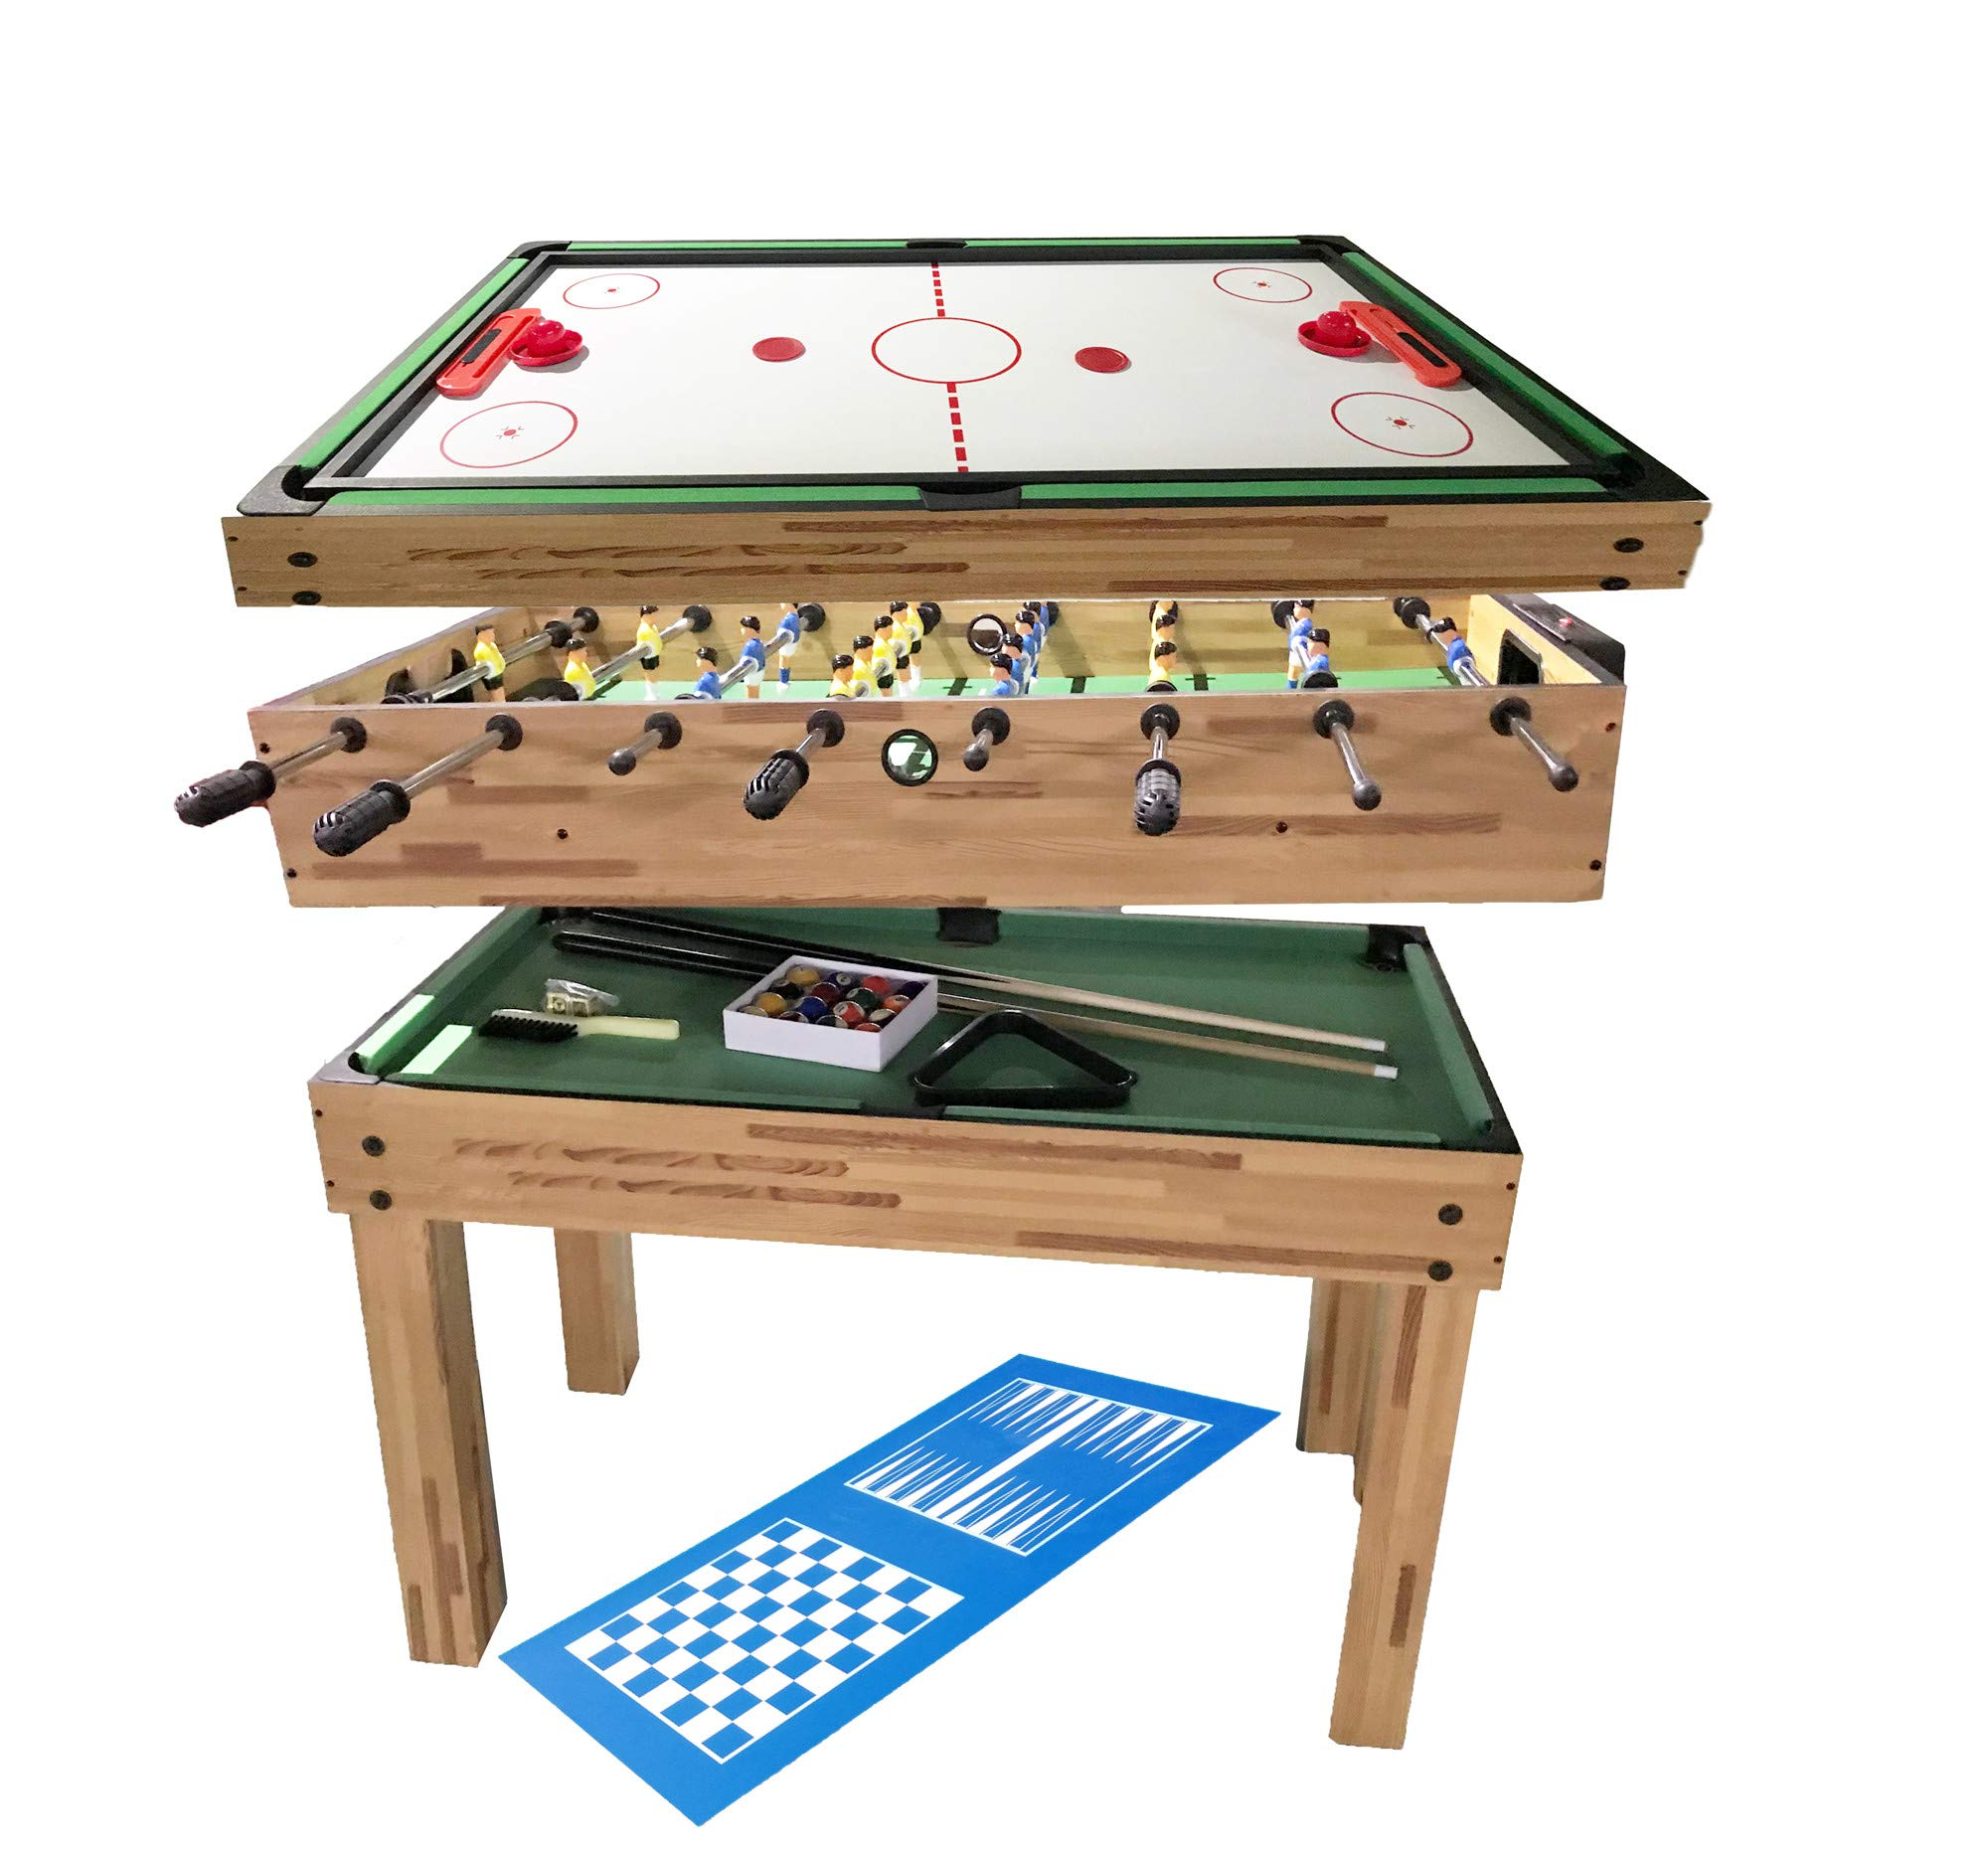 haxTON Game Table Combination Multi Game Table with 4 Games 4 in 1 Game Table Include Air Hockey Table, Pool Table Bowling Table and Foosball Table for Children and Adult Chess Exclude (4 in 1) by haxTON